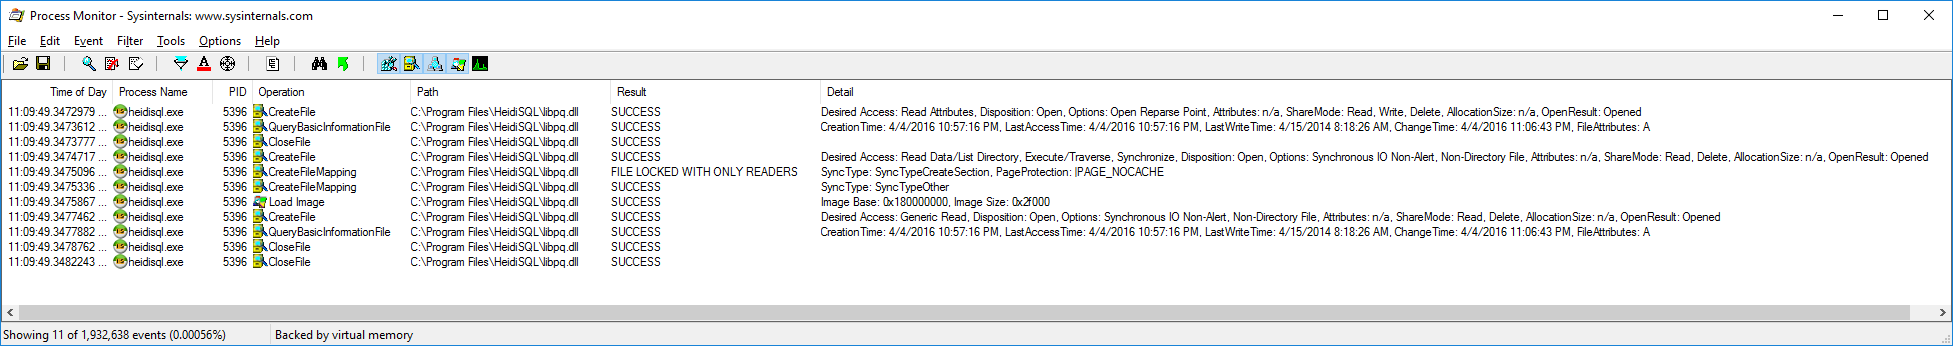 Cannot find a usable libpq dll